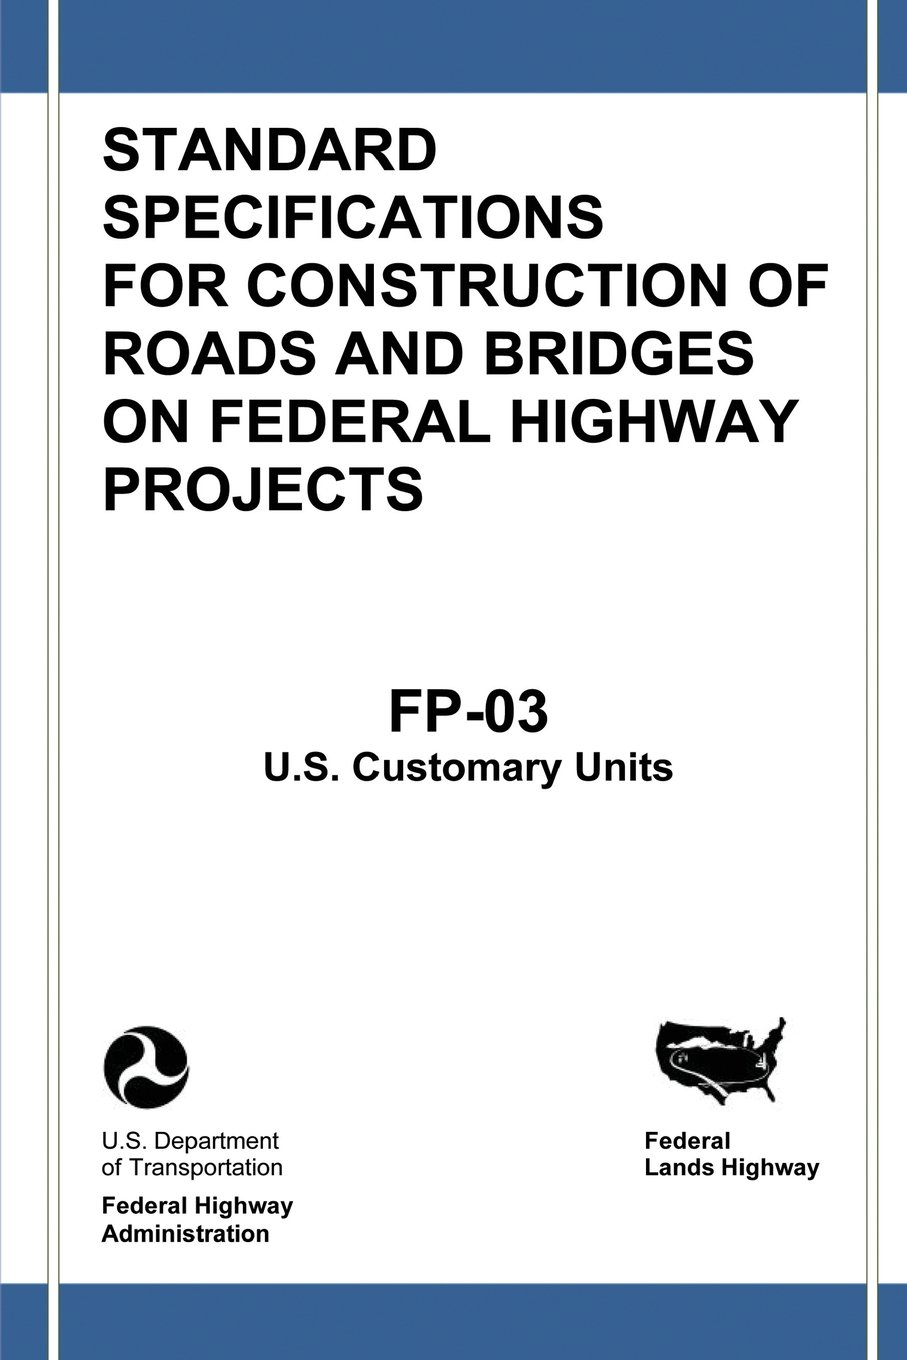 Federal lands highway standard specifications for construction of federal lands highway standard specifications for construction of roads and bridges on federal highway projects fp 03 us customary units u s nvjuhfo Gallery